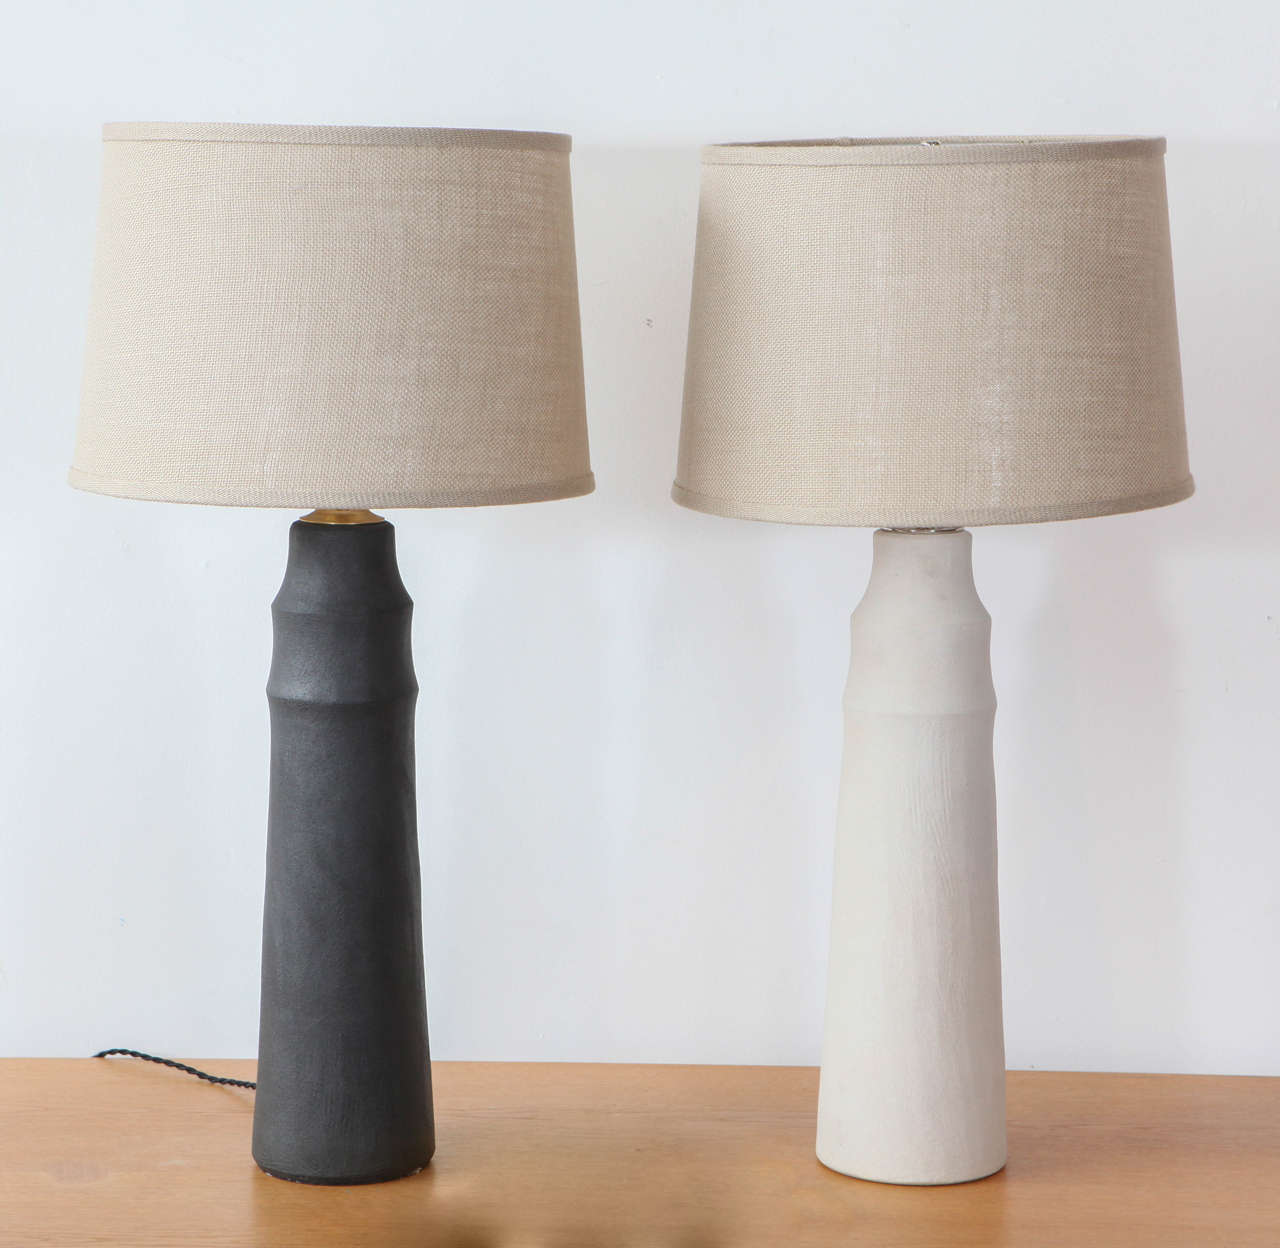 Ceramic table lamps by Los Angeles based ceramicist, Mirena Kim. Six week lead time if none available in stock. Available in Black, Ecru, and Ice Plant. Shades sold separately. Dimensions vary slightly.